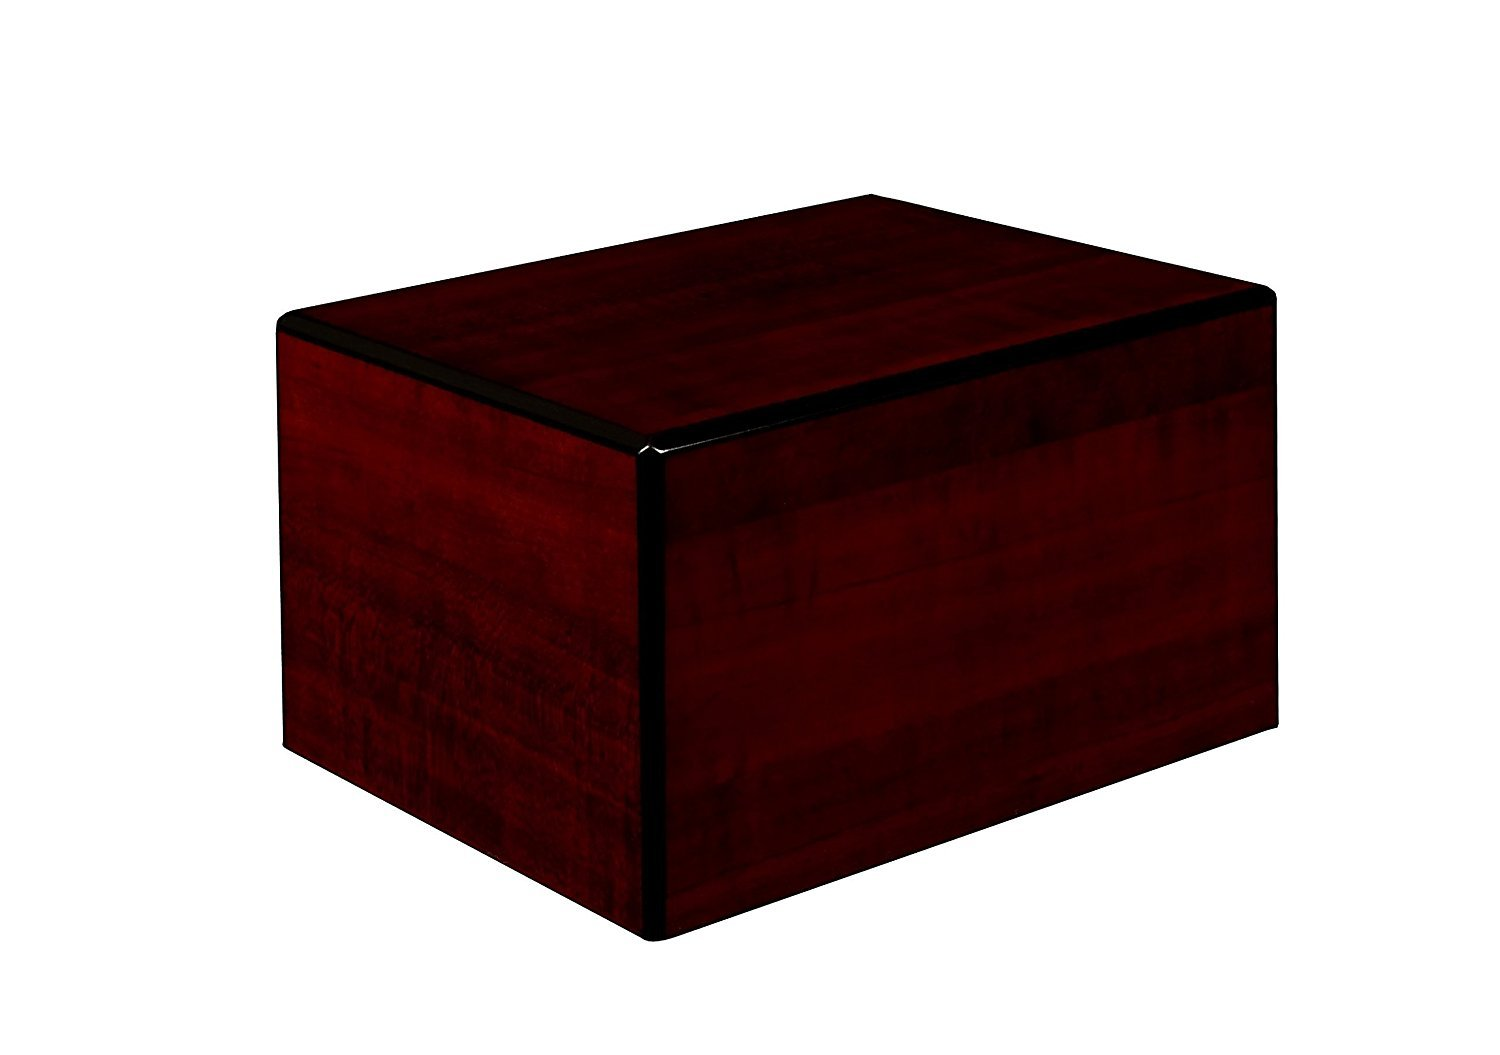 Chateau Urns Society Collection, Large Adult Cremation Urn, Cherry wood finish Society Urn CH-Large